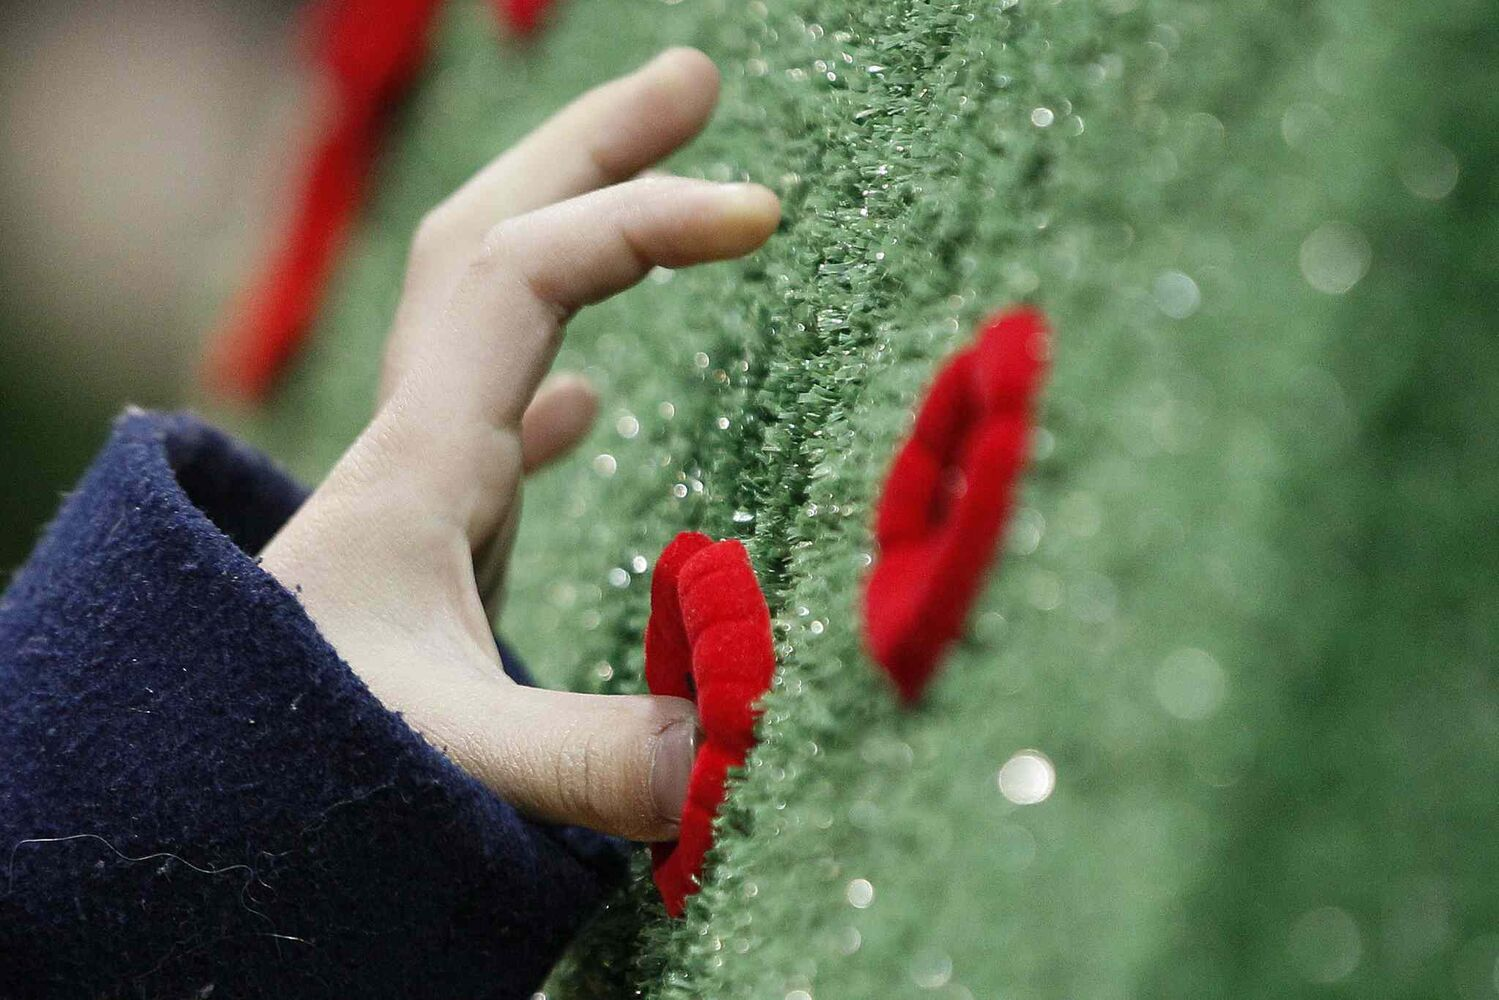 A young girl places her poppy on a memorial after the Remembrance Day service at the RBC Convention Centre Winnipeg. (JOHN WOODS / THE CANADIAN PRESS)